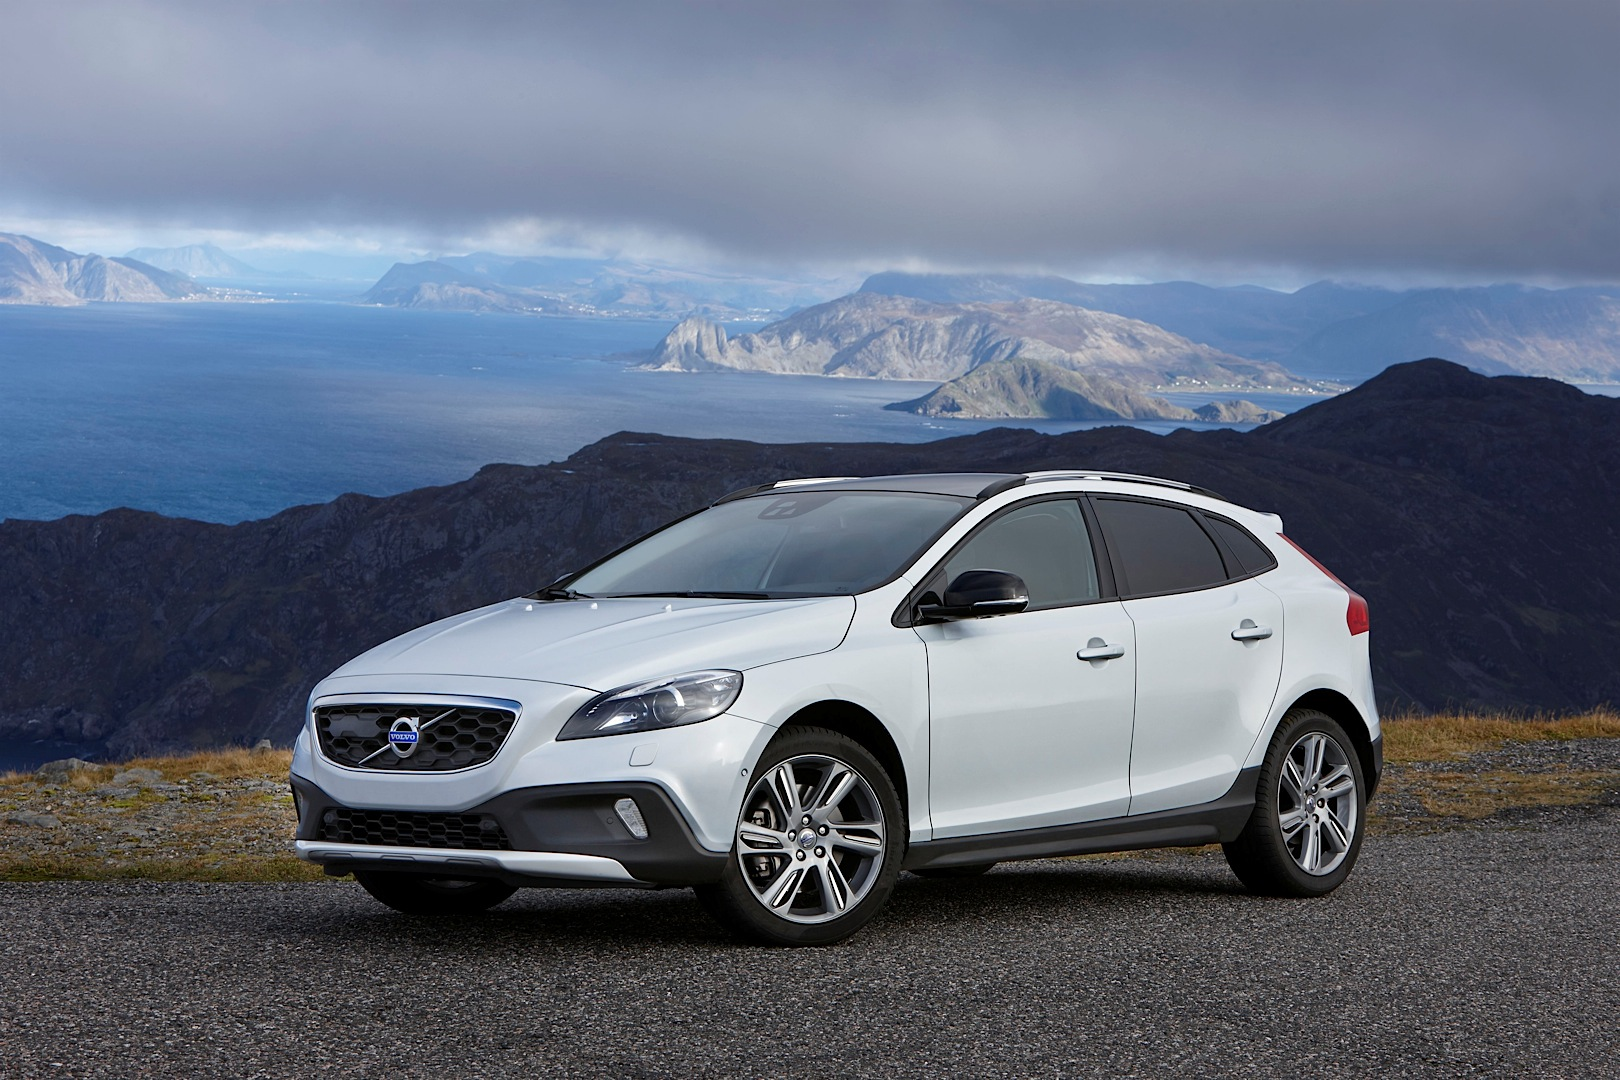 volvo v40 cross county gets new t5 awd engine 2 liter turbo with 245 hp autoevolution. Black Bedroom Furniture Sets. Home Design Ideas